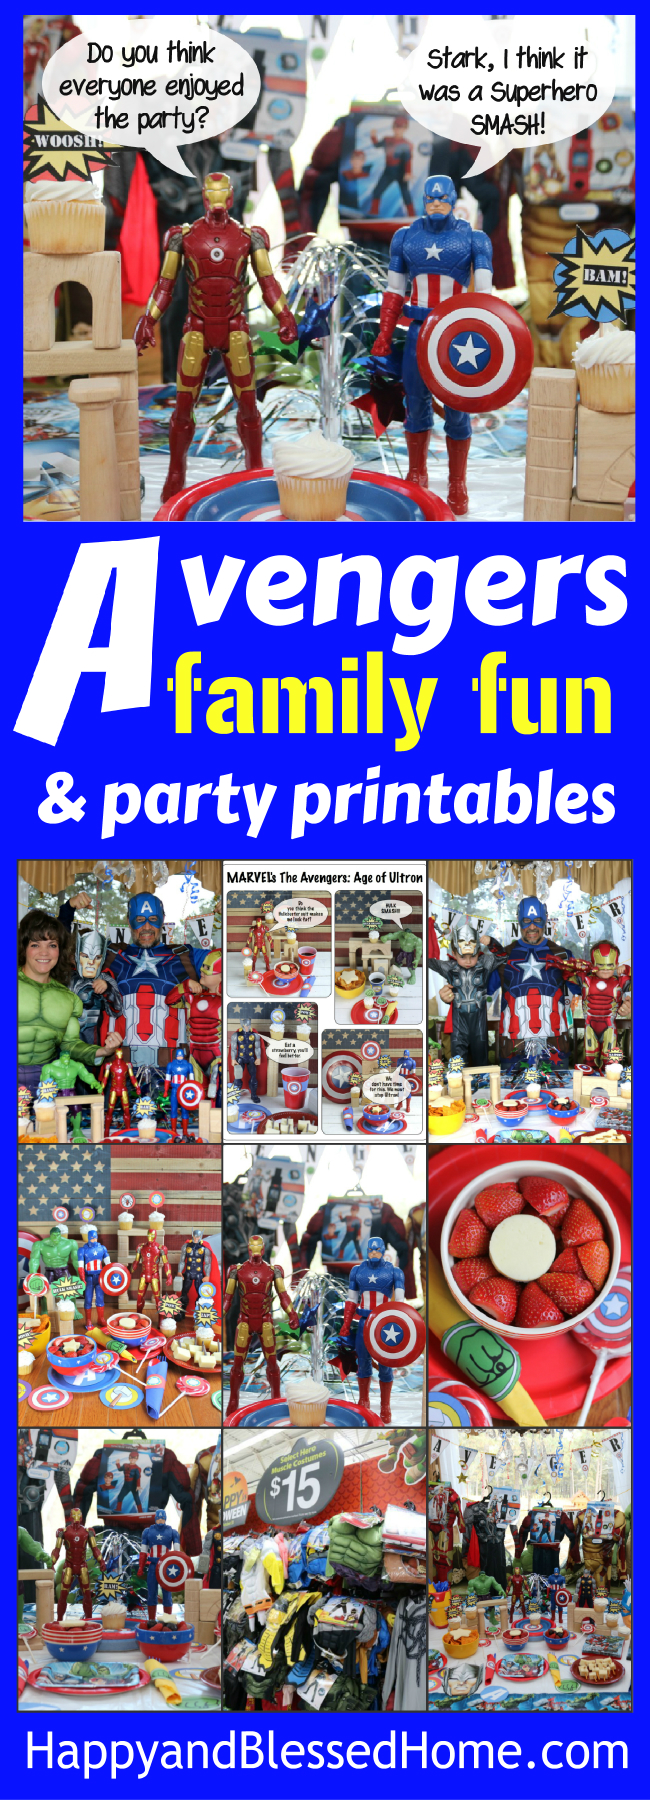 Everything you need to host a Superhero birthday party of Avengers movie watch - complete with party plan, easy recipes and printables - family fun for all your favorite Superheroes!